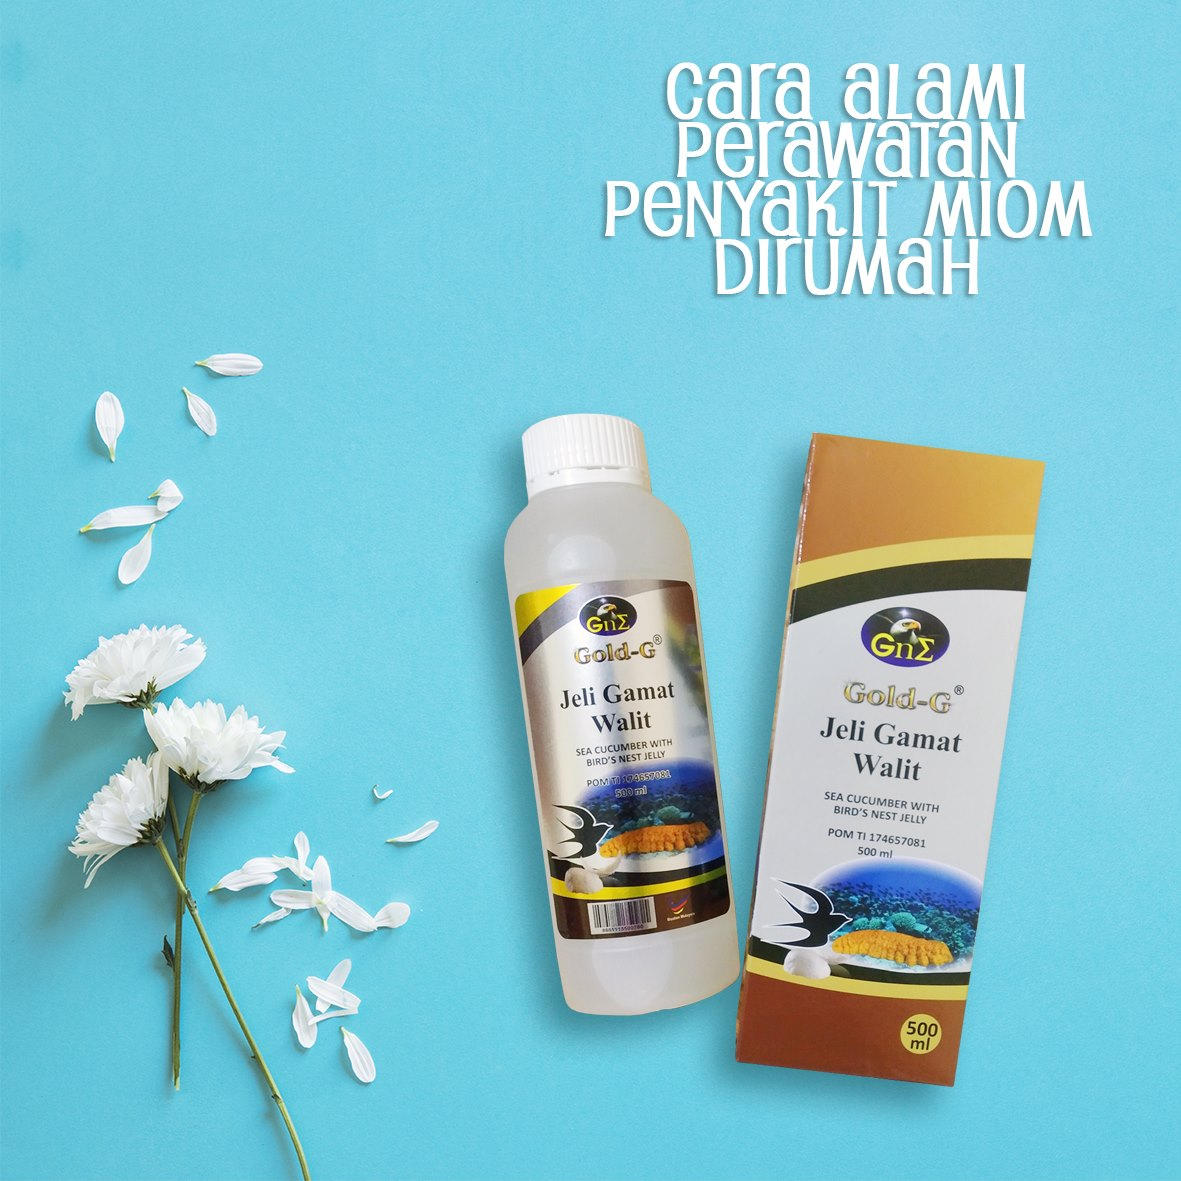 Jelly Gamat Untuk Miom Gold G Walet